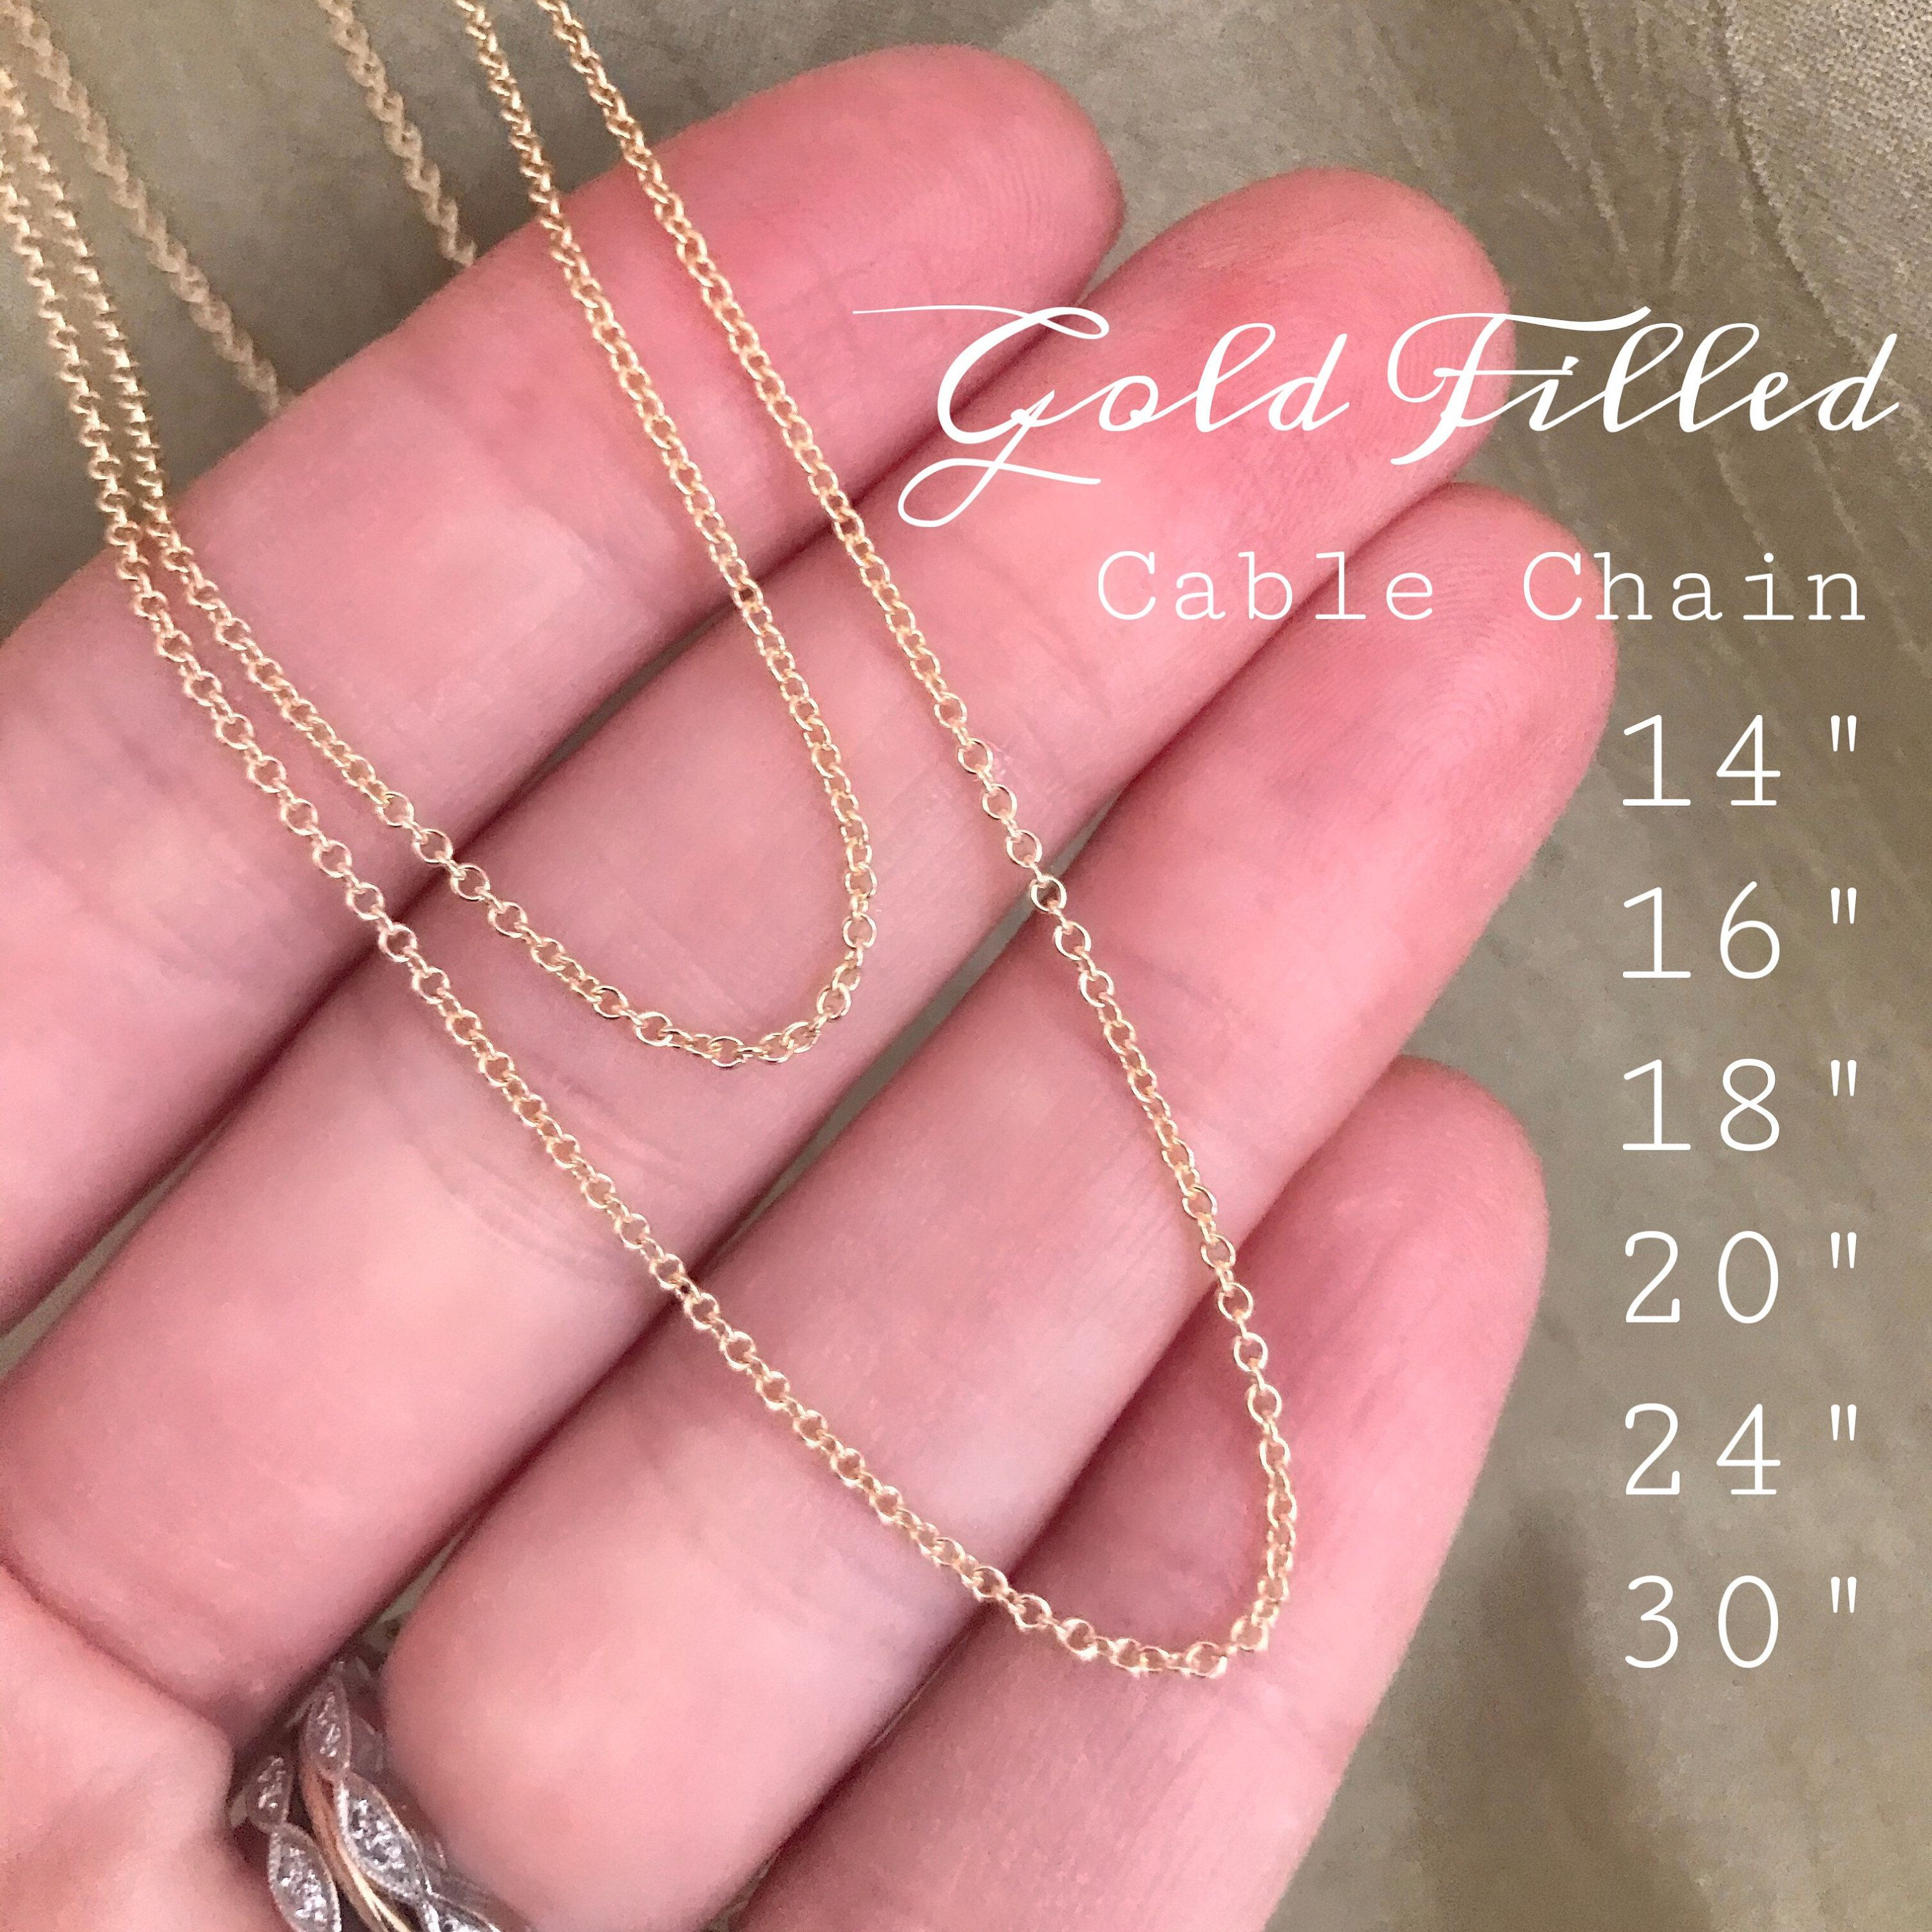 Sterling Silver or gold filled chain upgrade add this listing with your necklace purchase